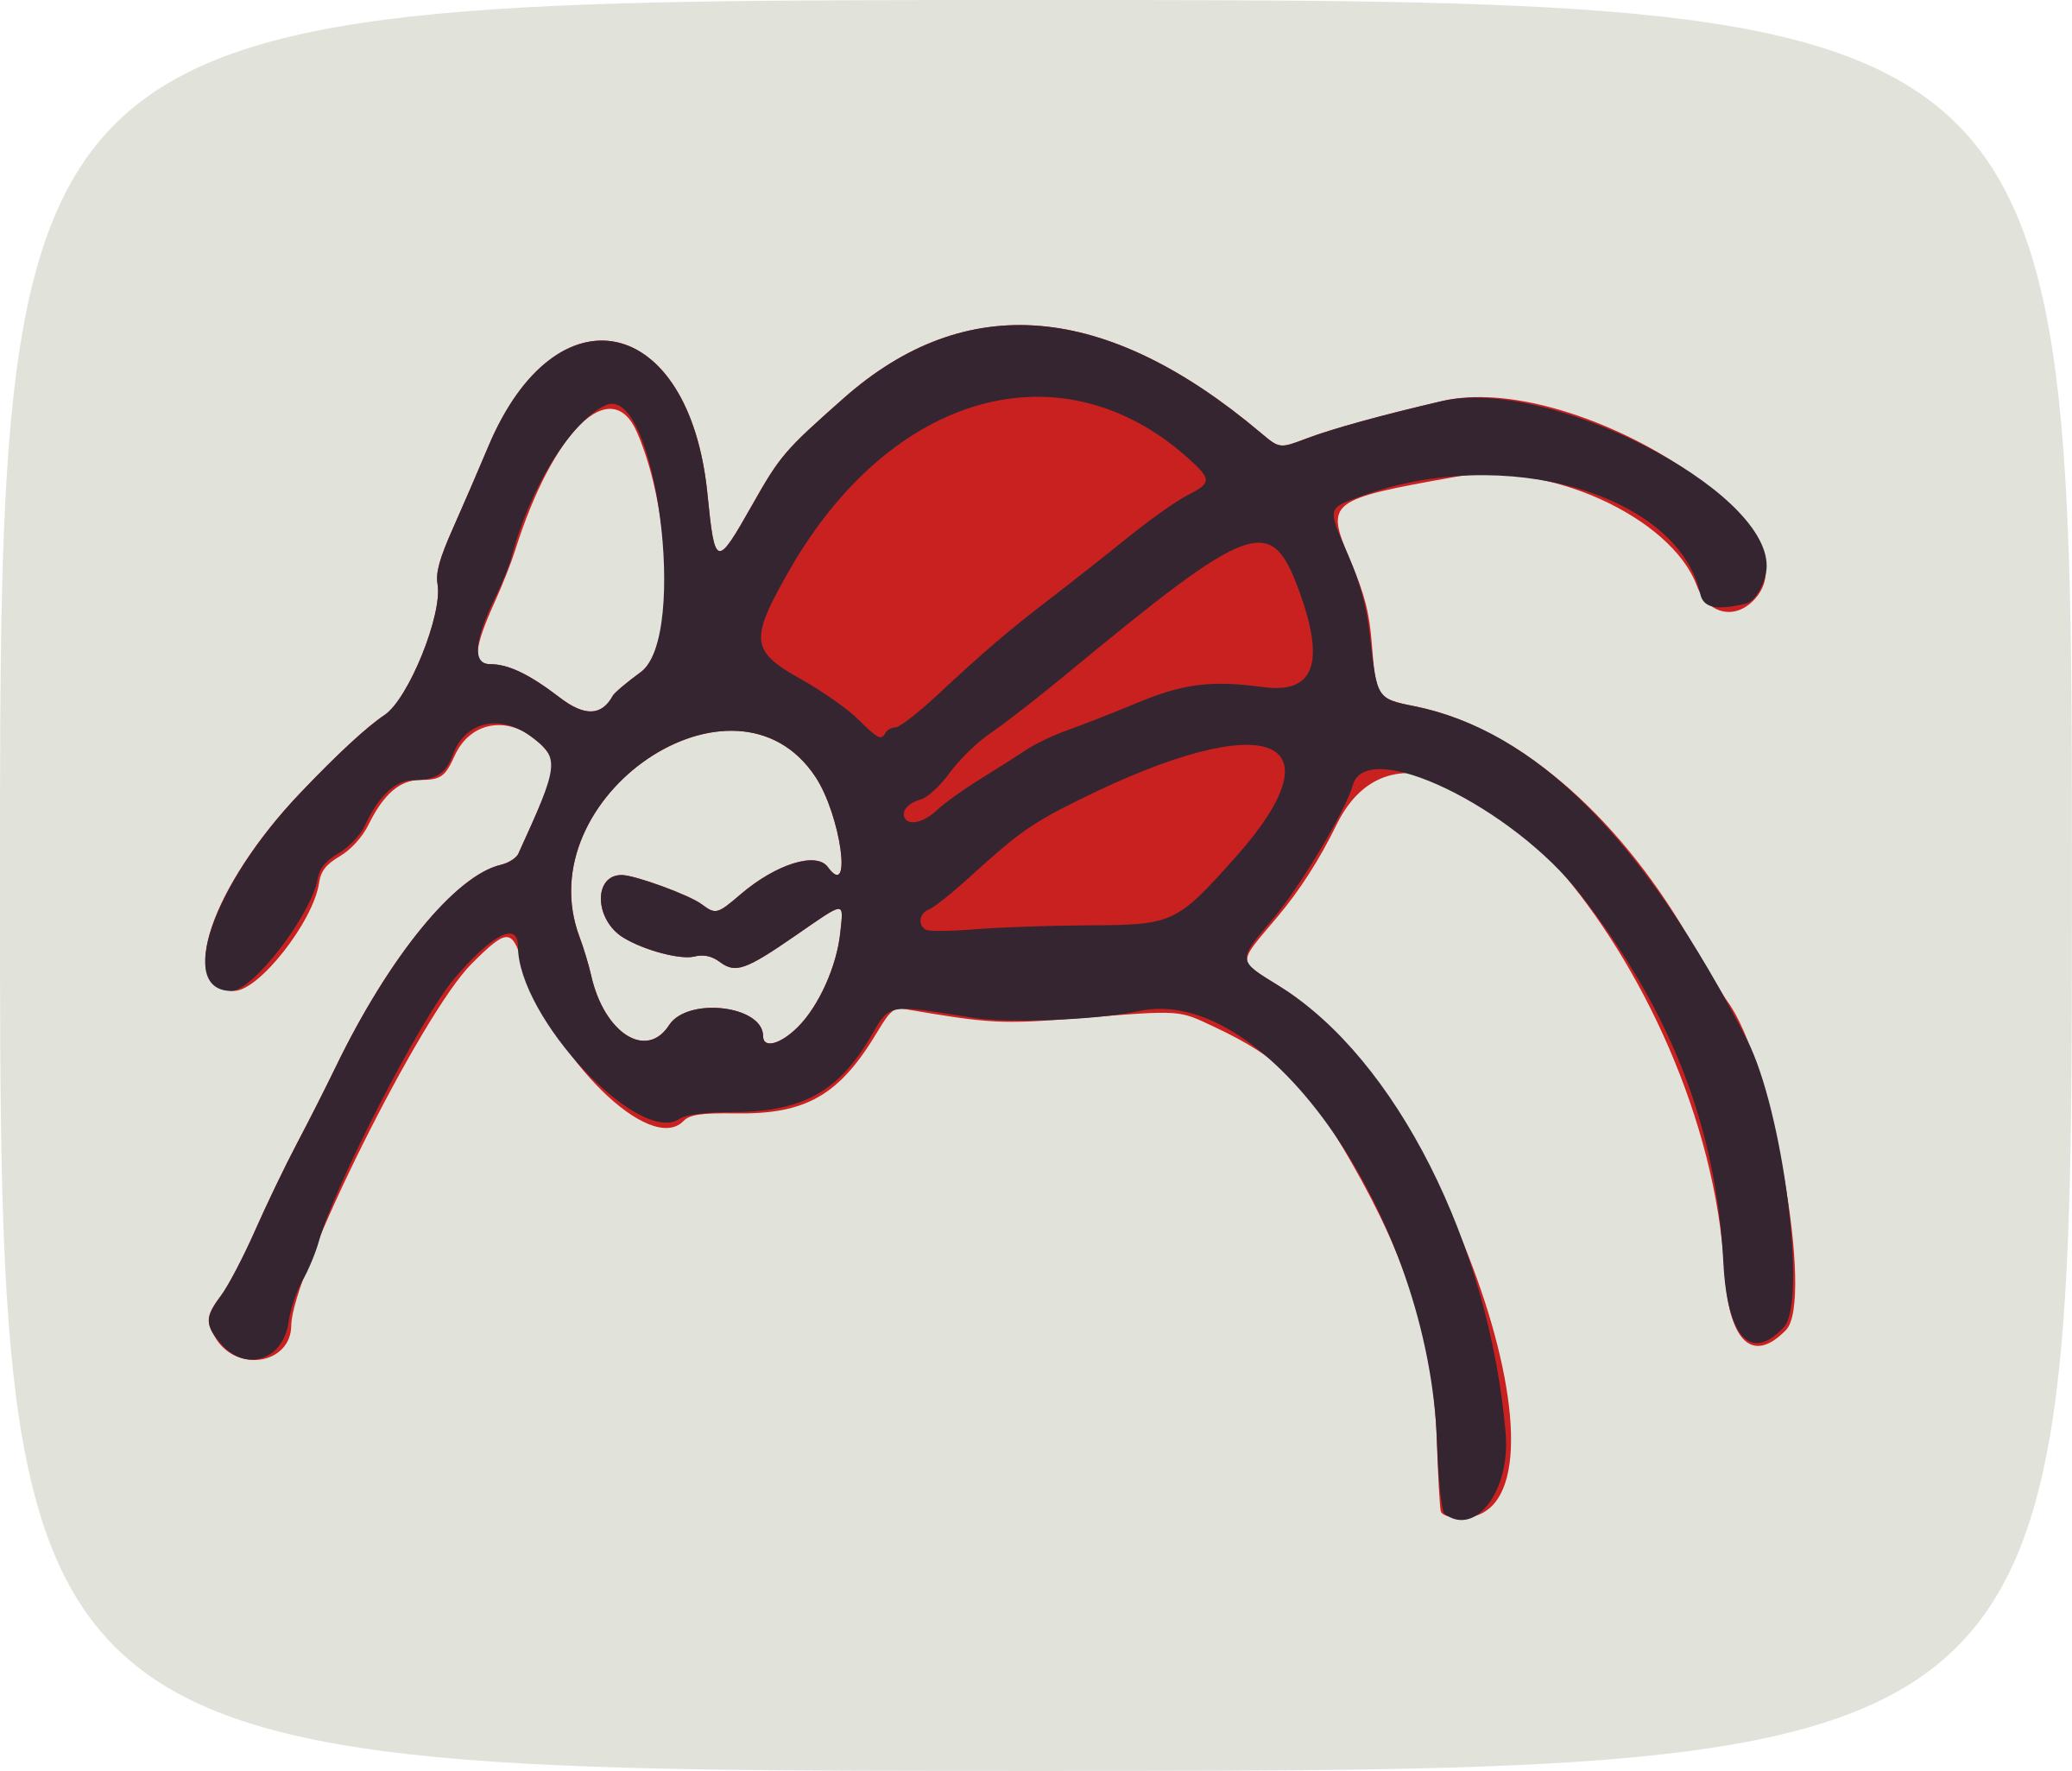 Spider by global quiz